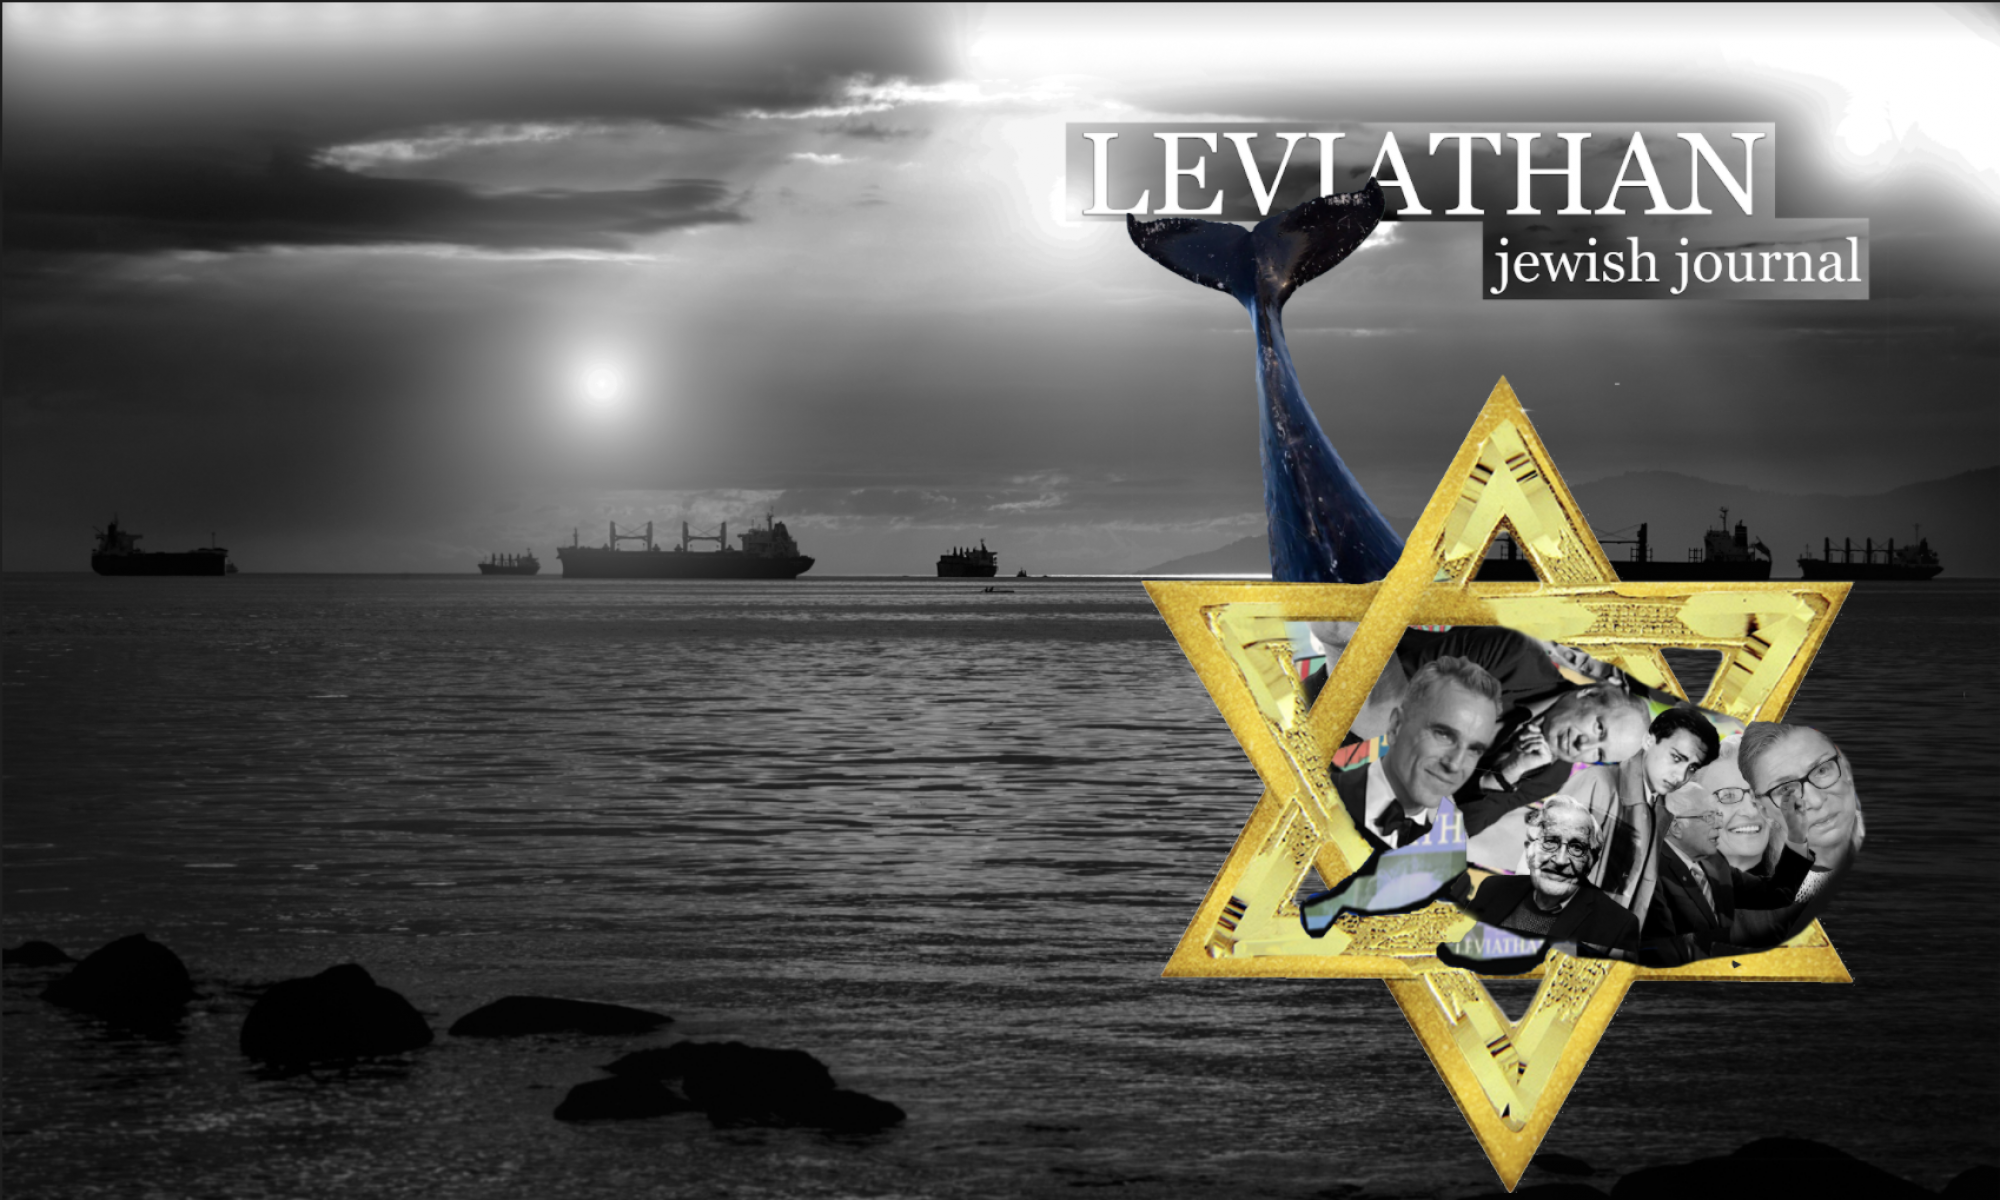 Leviathan Jewish Journal